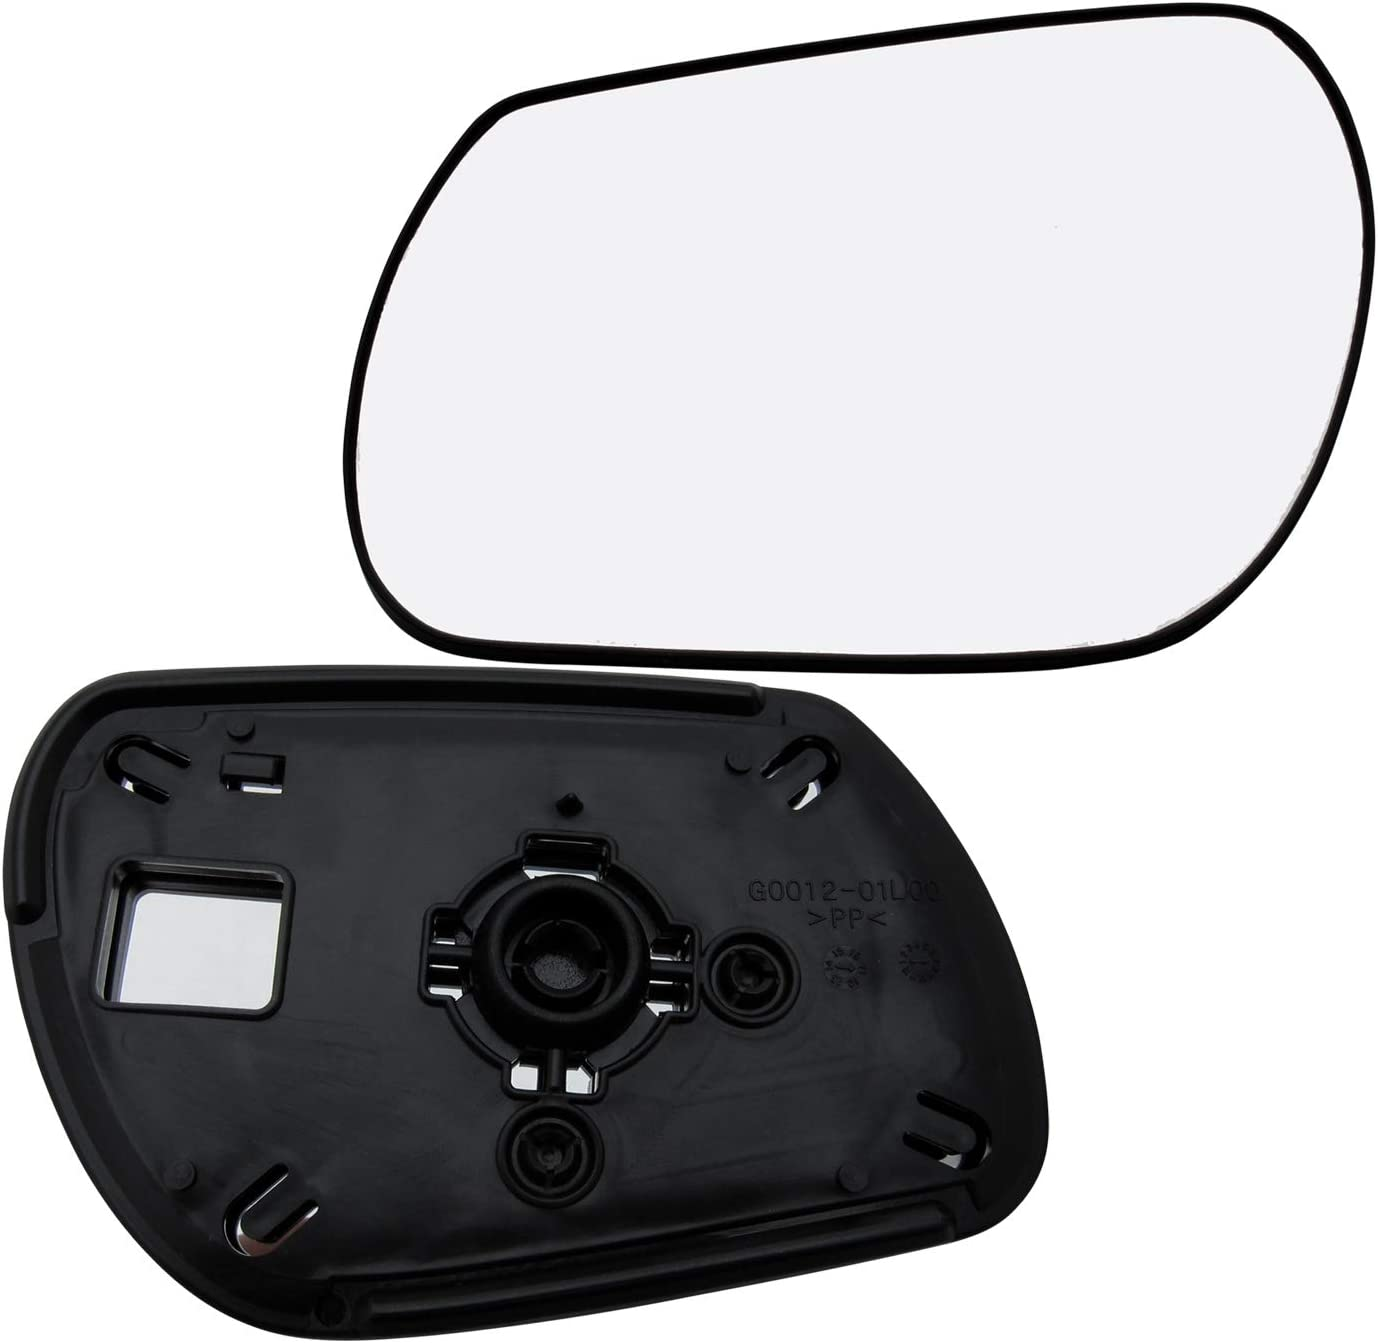 9 Sold By Rugged TUFF New Replacement Driver Side Mirror Glass W Backing Compatible With 2004 2005 2006 2007 2008 2009 Mazda 3